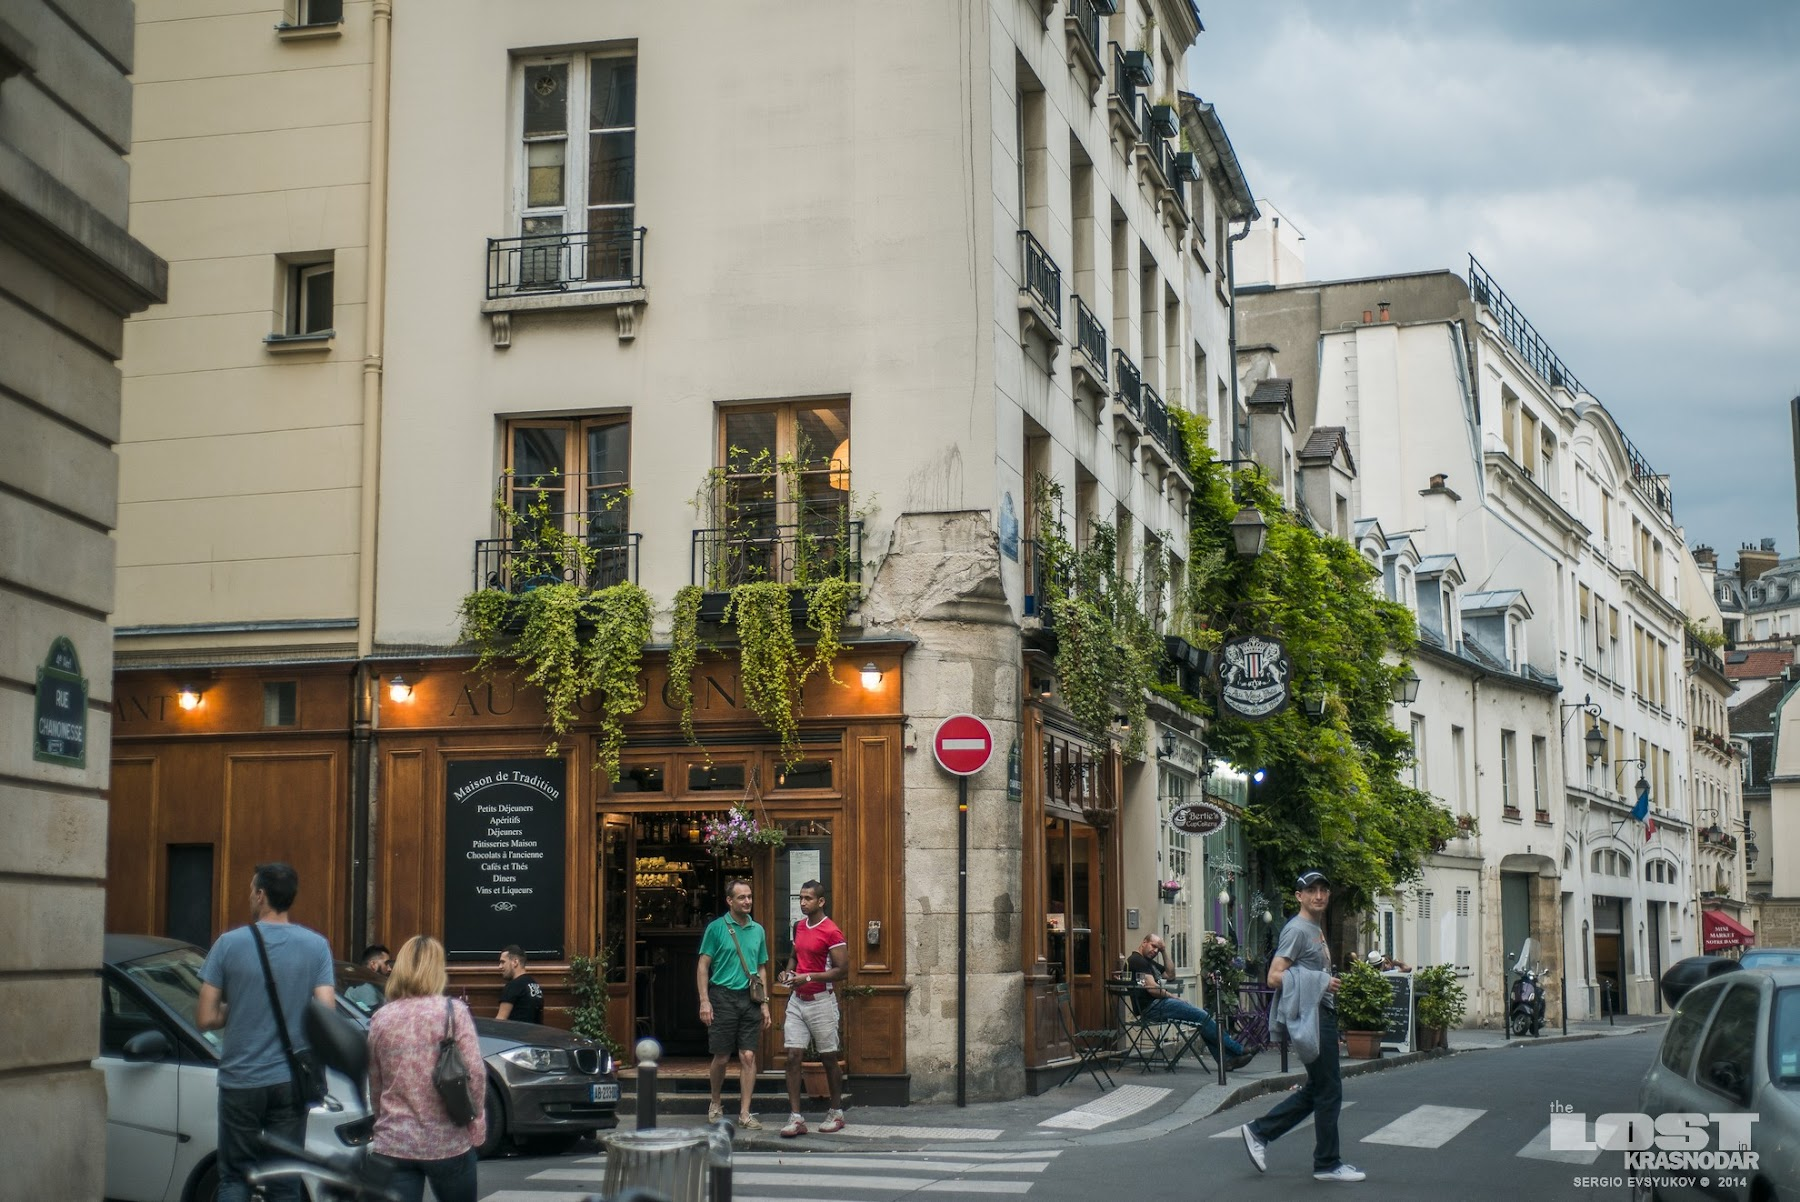 picturesque Parisian street